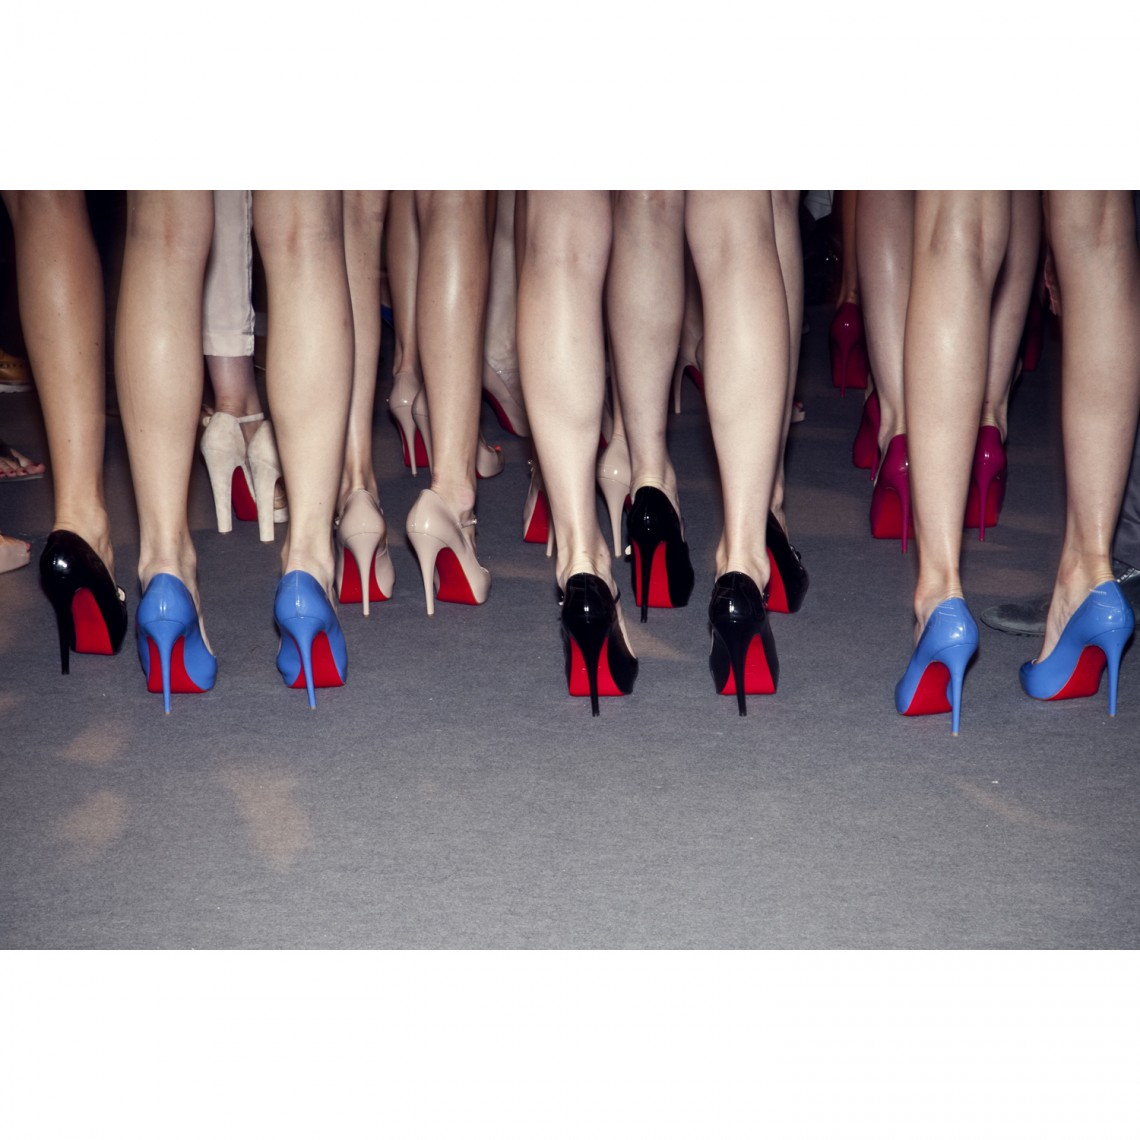 Marco Walker Stilettos Limited Edition Print